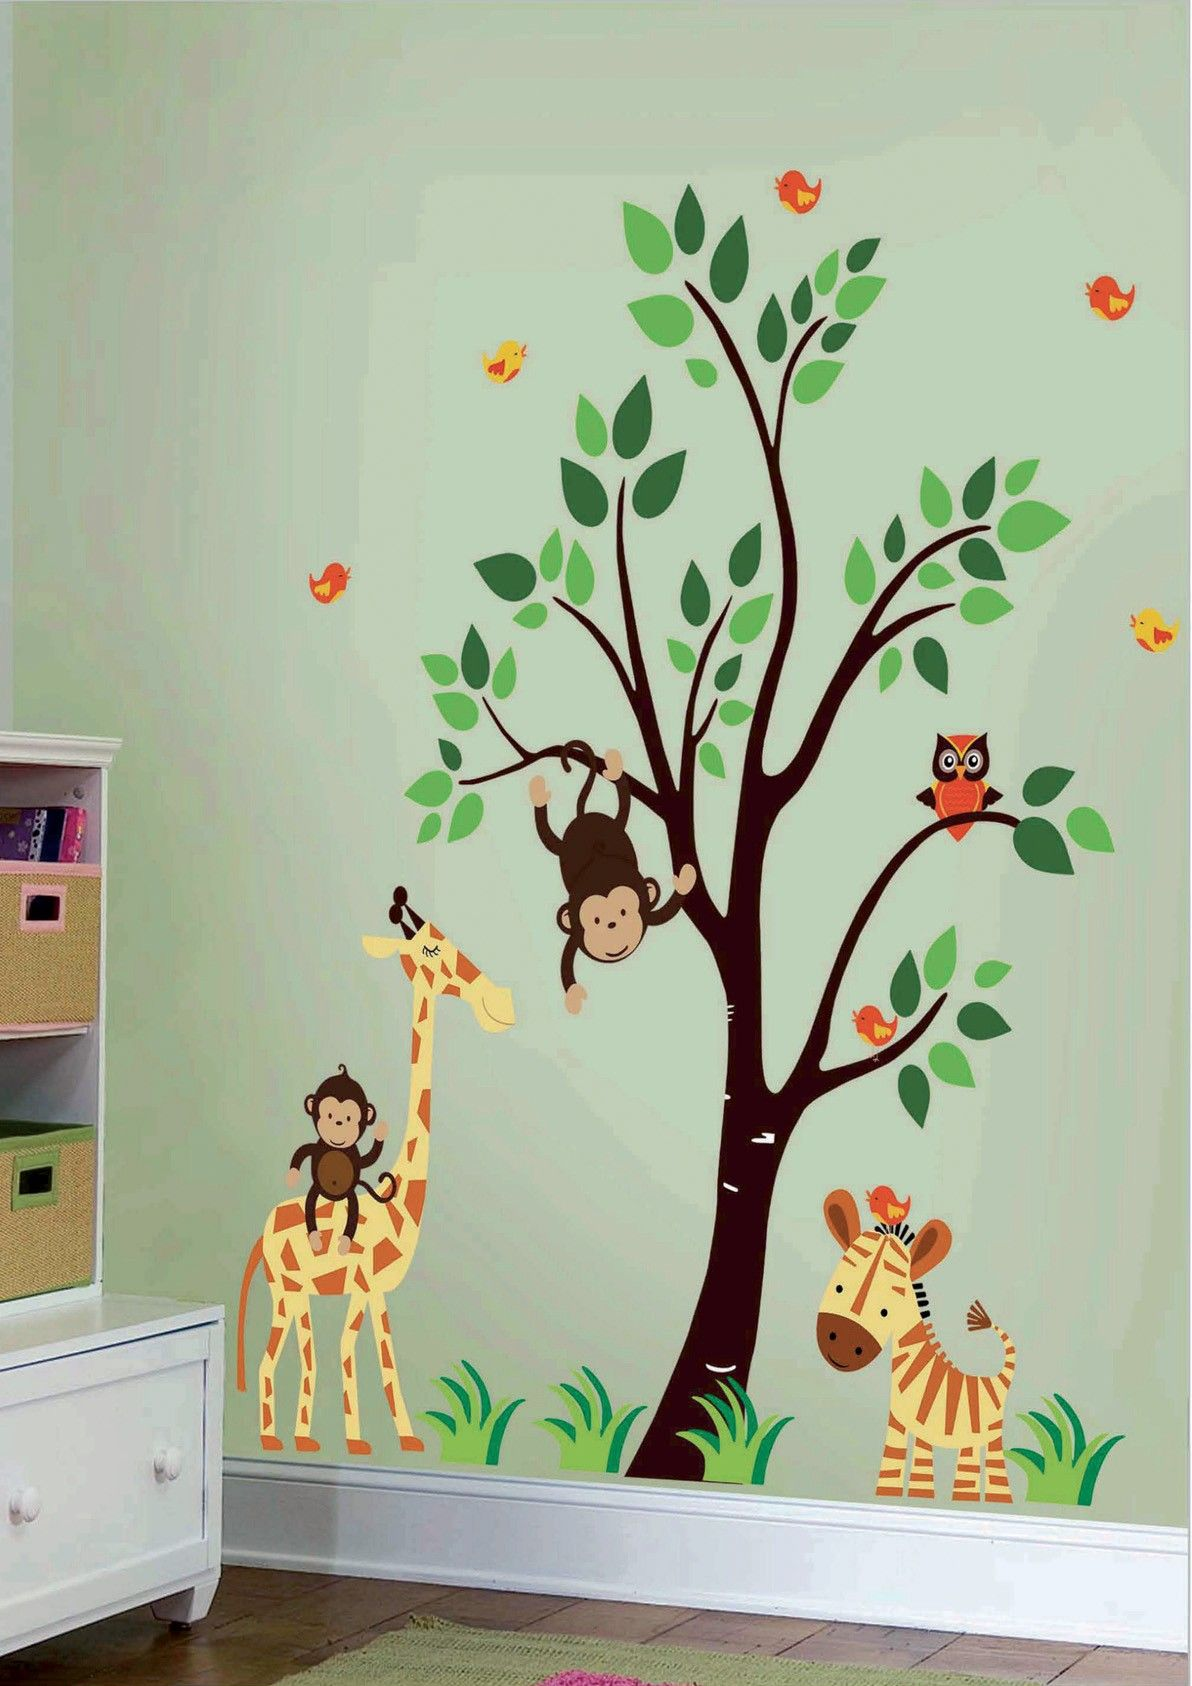 Artistic Vinyl Blik Mural Wall Sticker Jungle Family Wall Decal - Jungle themed nursery wall decals